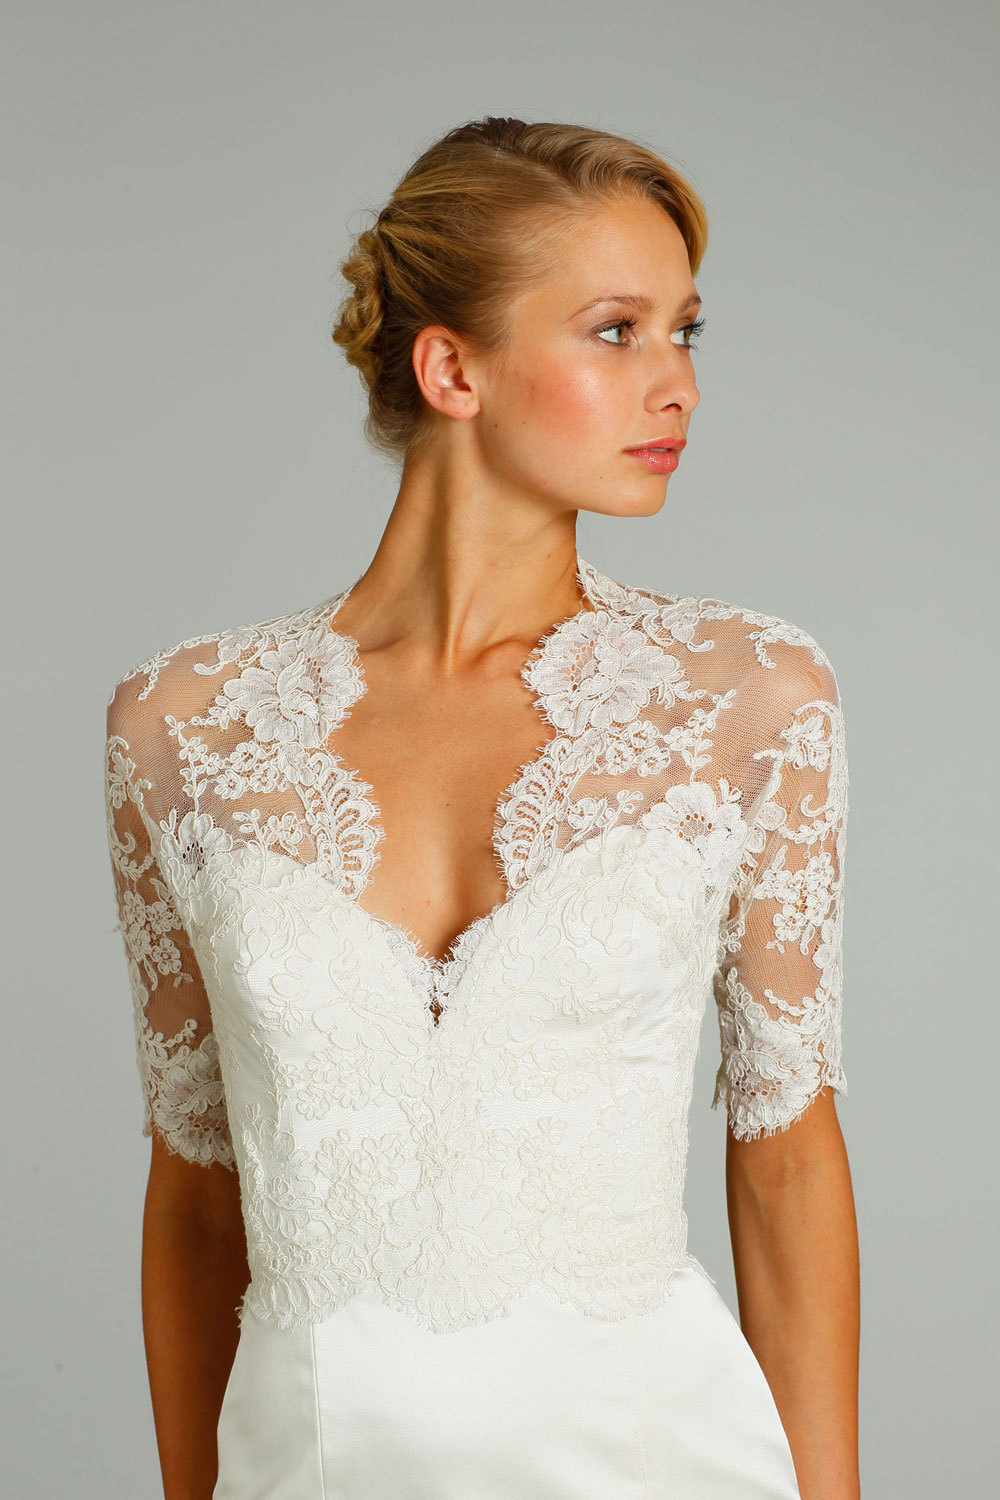 Fall-2012-wedding-dress-jim-hjelm-bridal-gowns-8256-detail.full